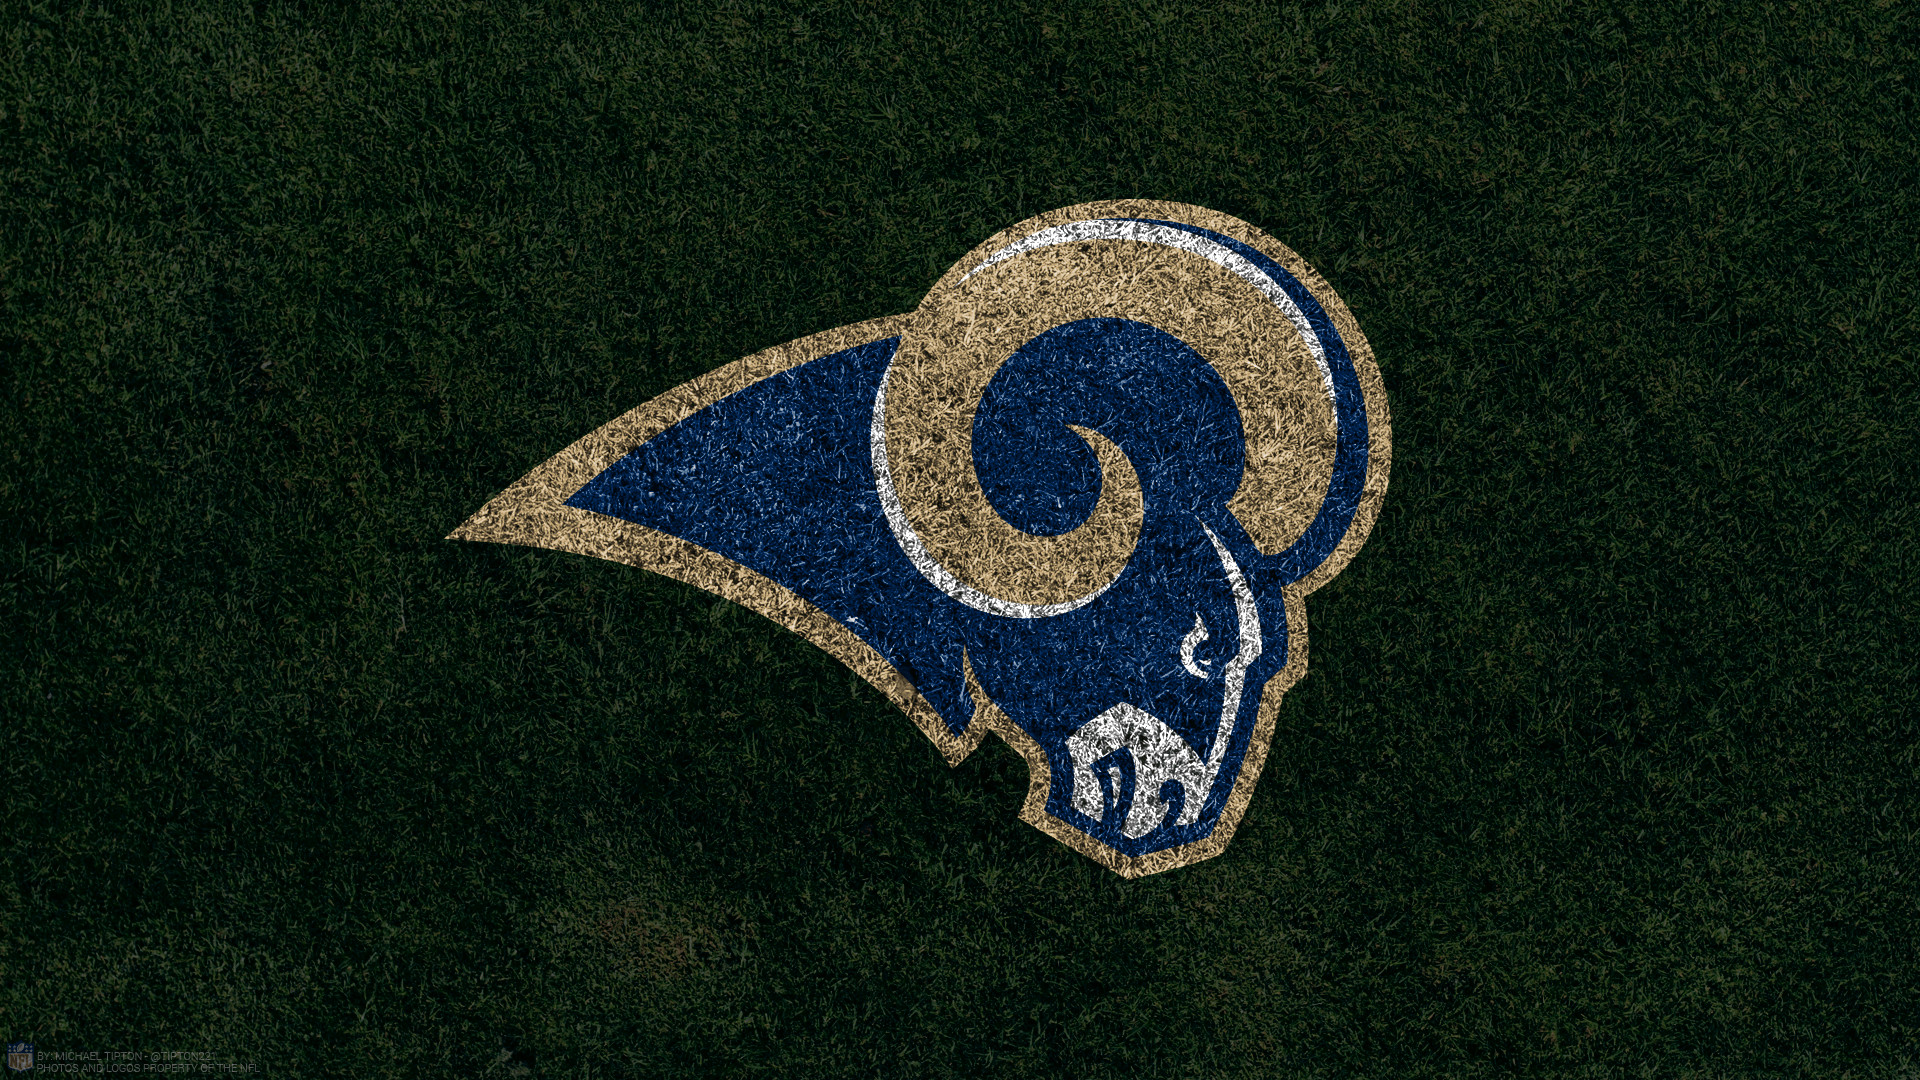 2017 Los Angeles Rams Wallpapers – PC  iPhone  Android